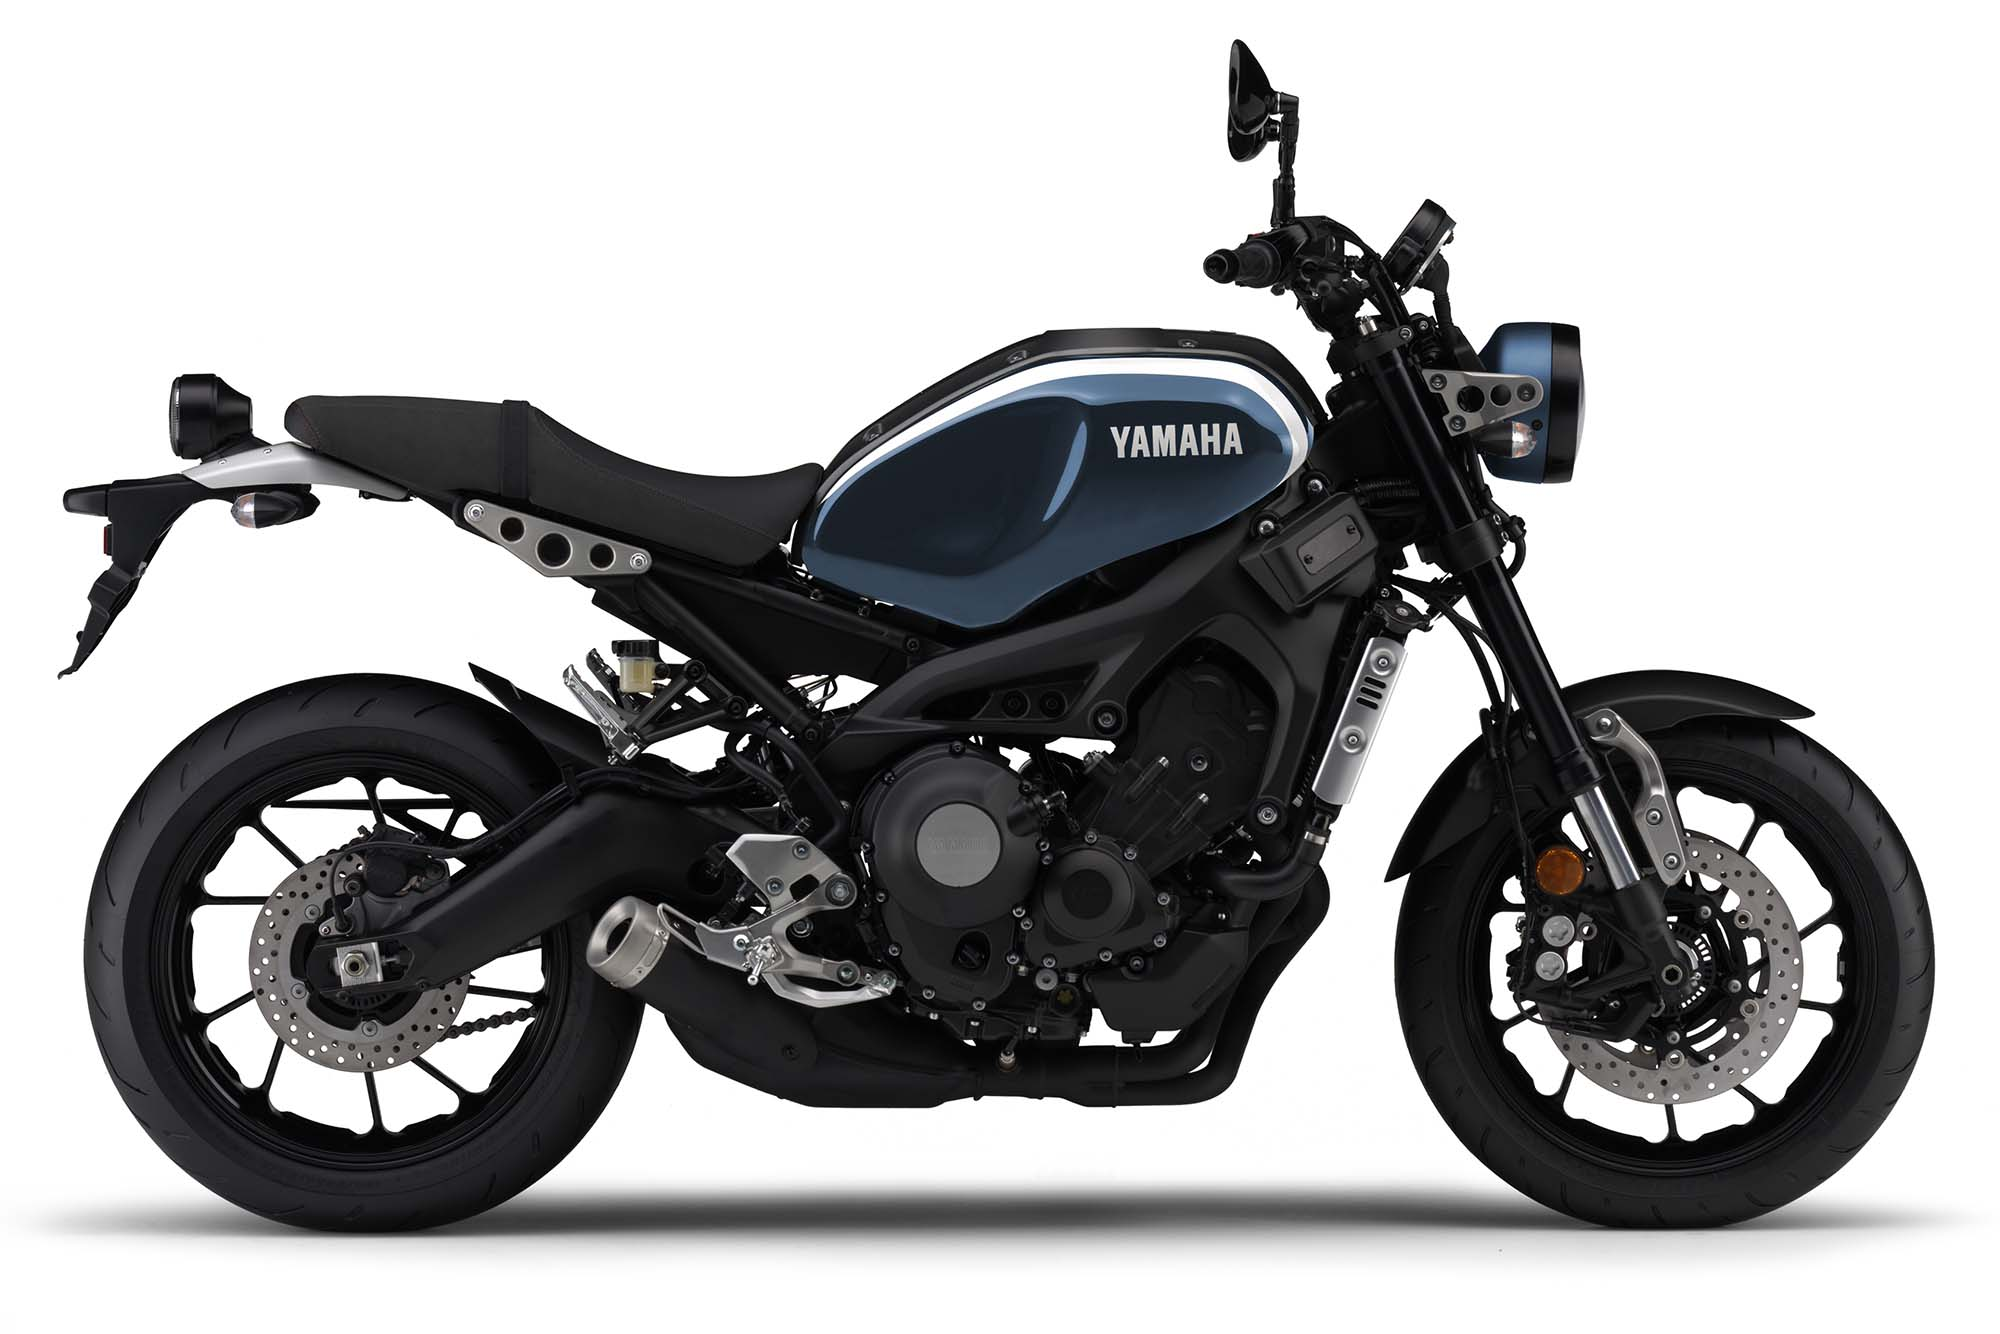 yamaha xsr900 adds to yamahas sportheritage range